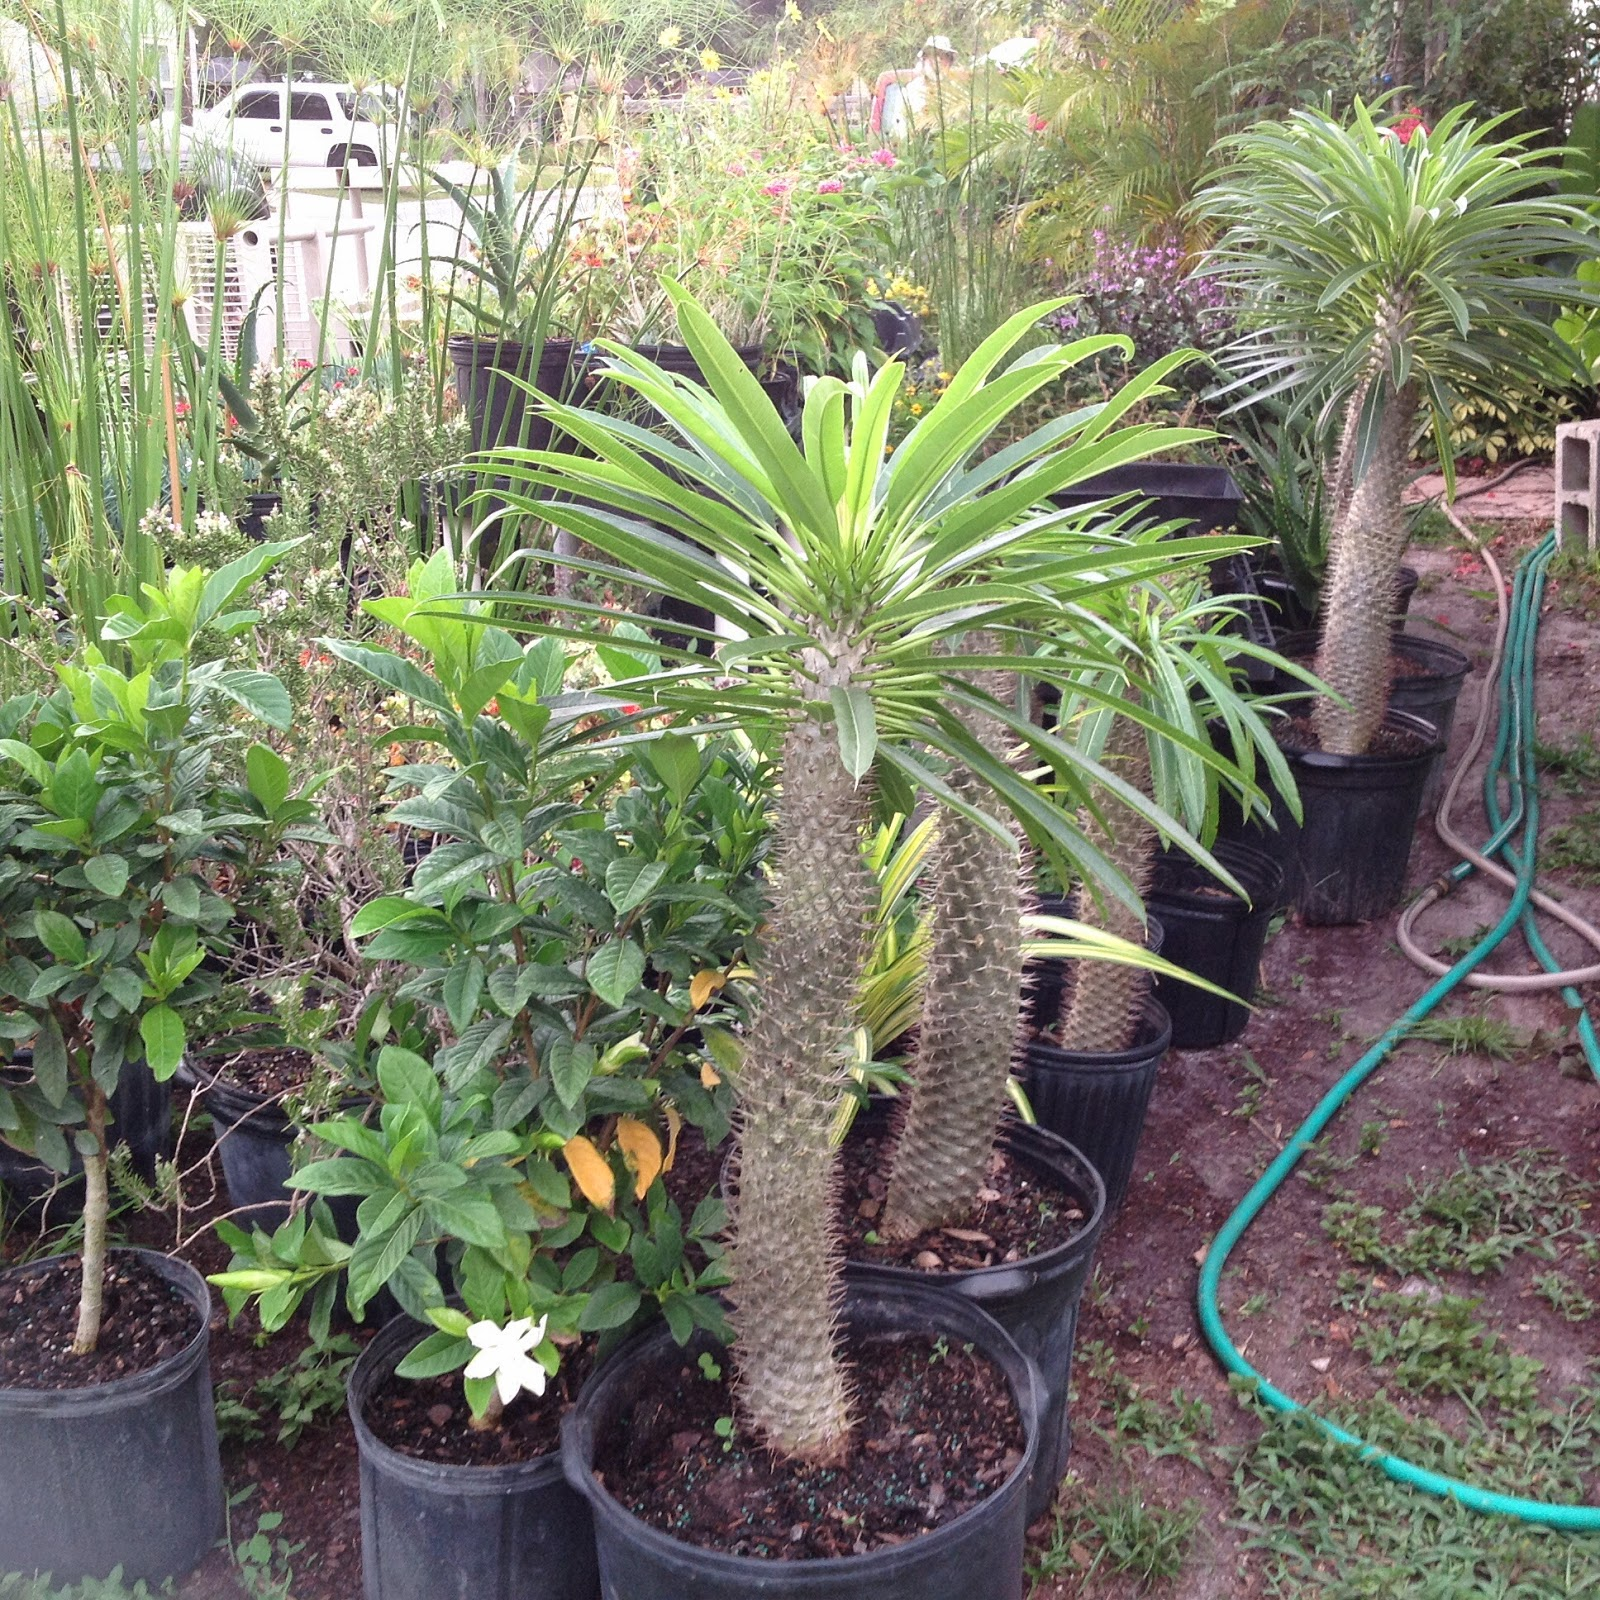 HeyPlantMan! Exotic Tropical Plants From St. Pete FL: We